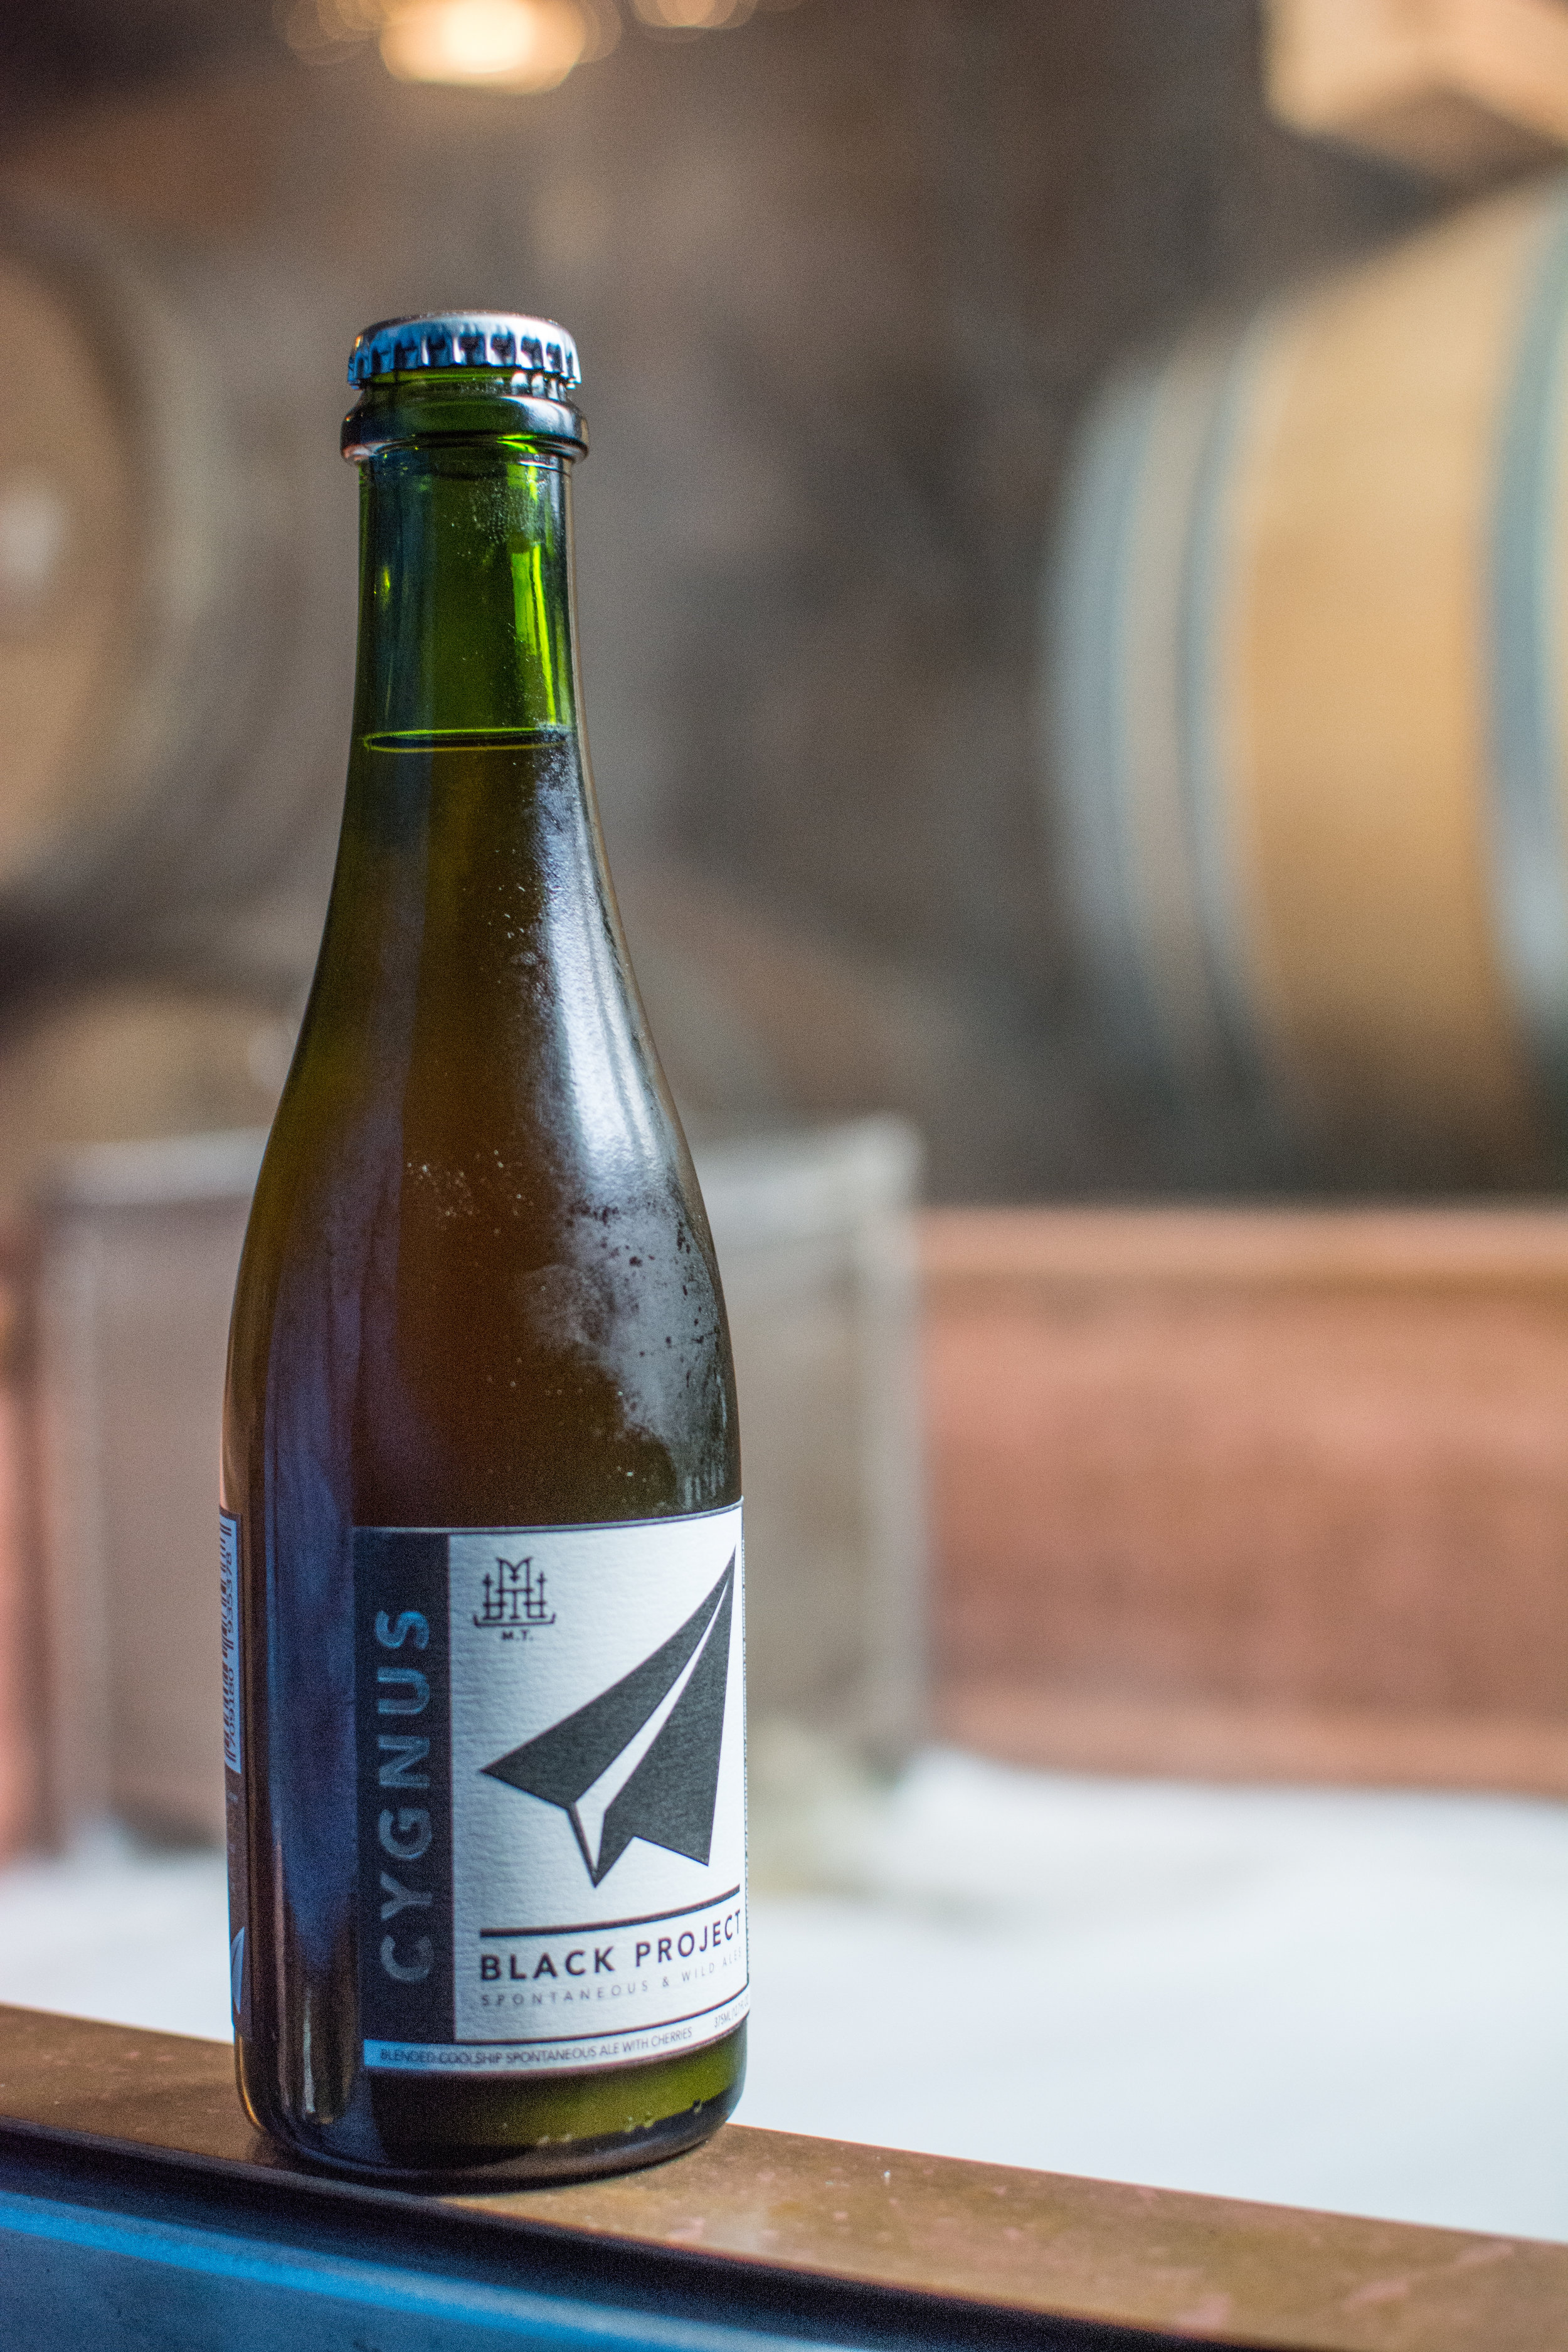 Cygnus    Style: Lambic-inspired,  coolship spontaneous ale    Brewery: Black Project    Location: Denver    ABV: around 7 percent    IBU: 20